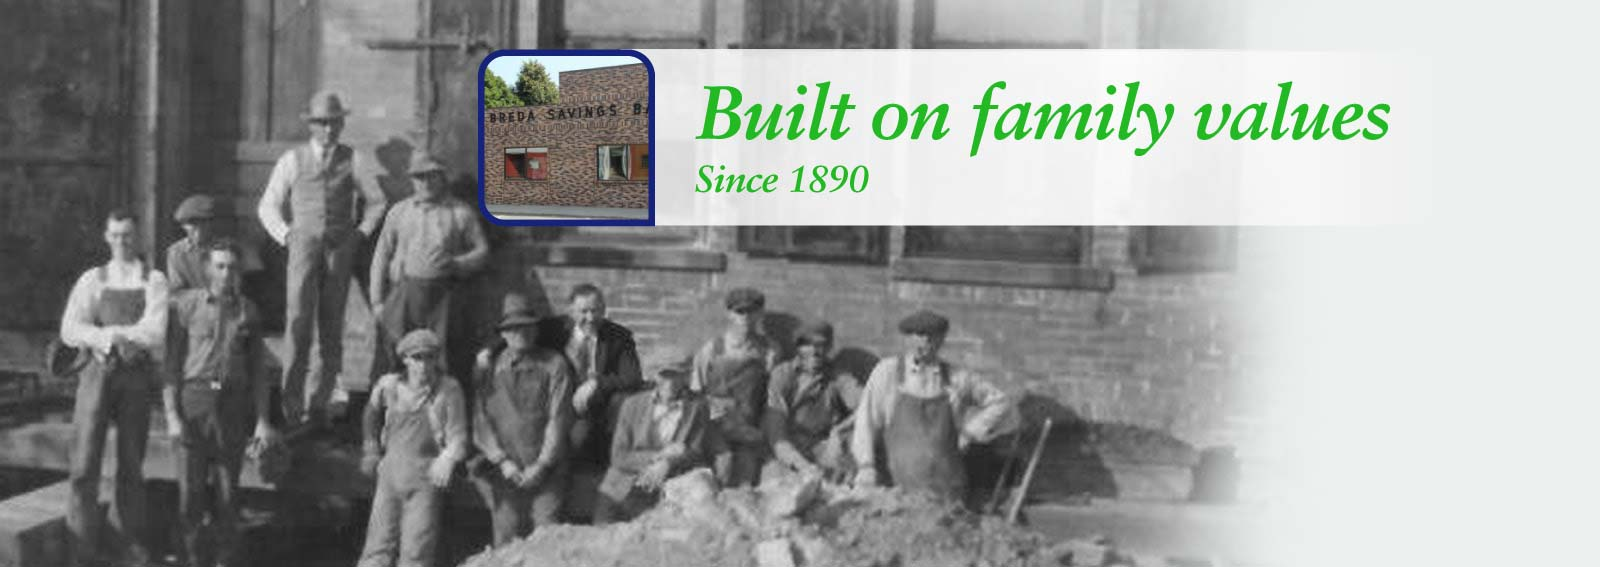 Built on family values since 1890